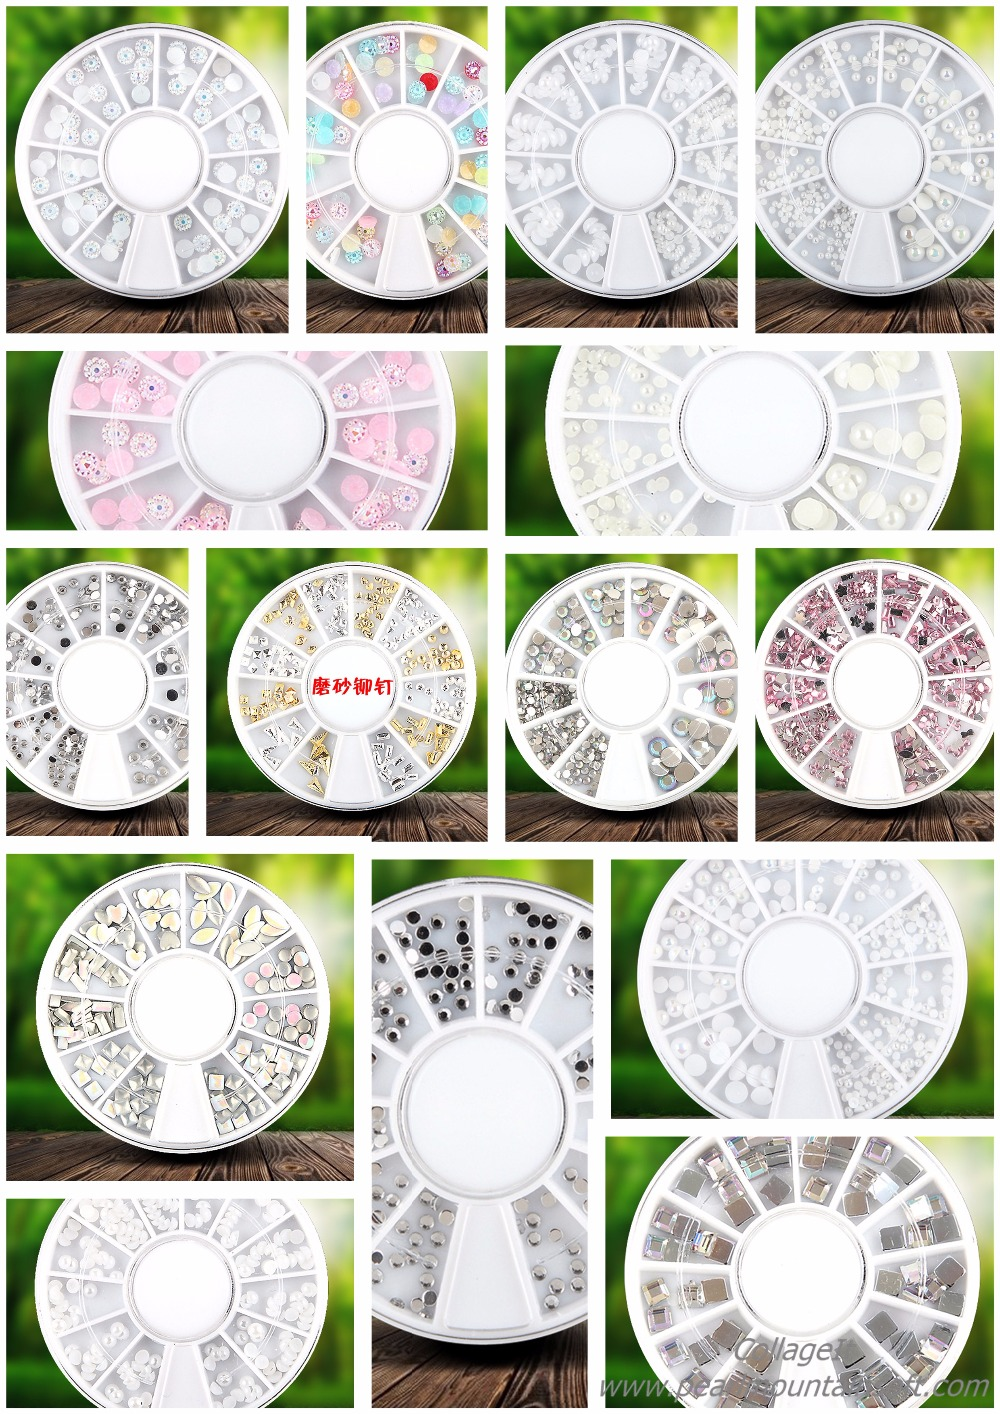 New 3D Charms Cystal Colourful Nail Art Decoration Wheel,Acrylic Nail Art Rhinestones Different shapes Manicure Supplies